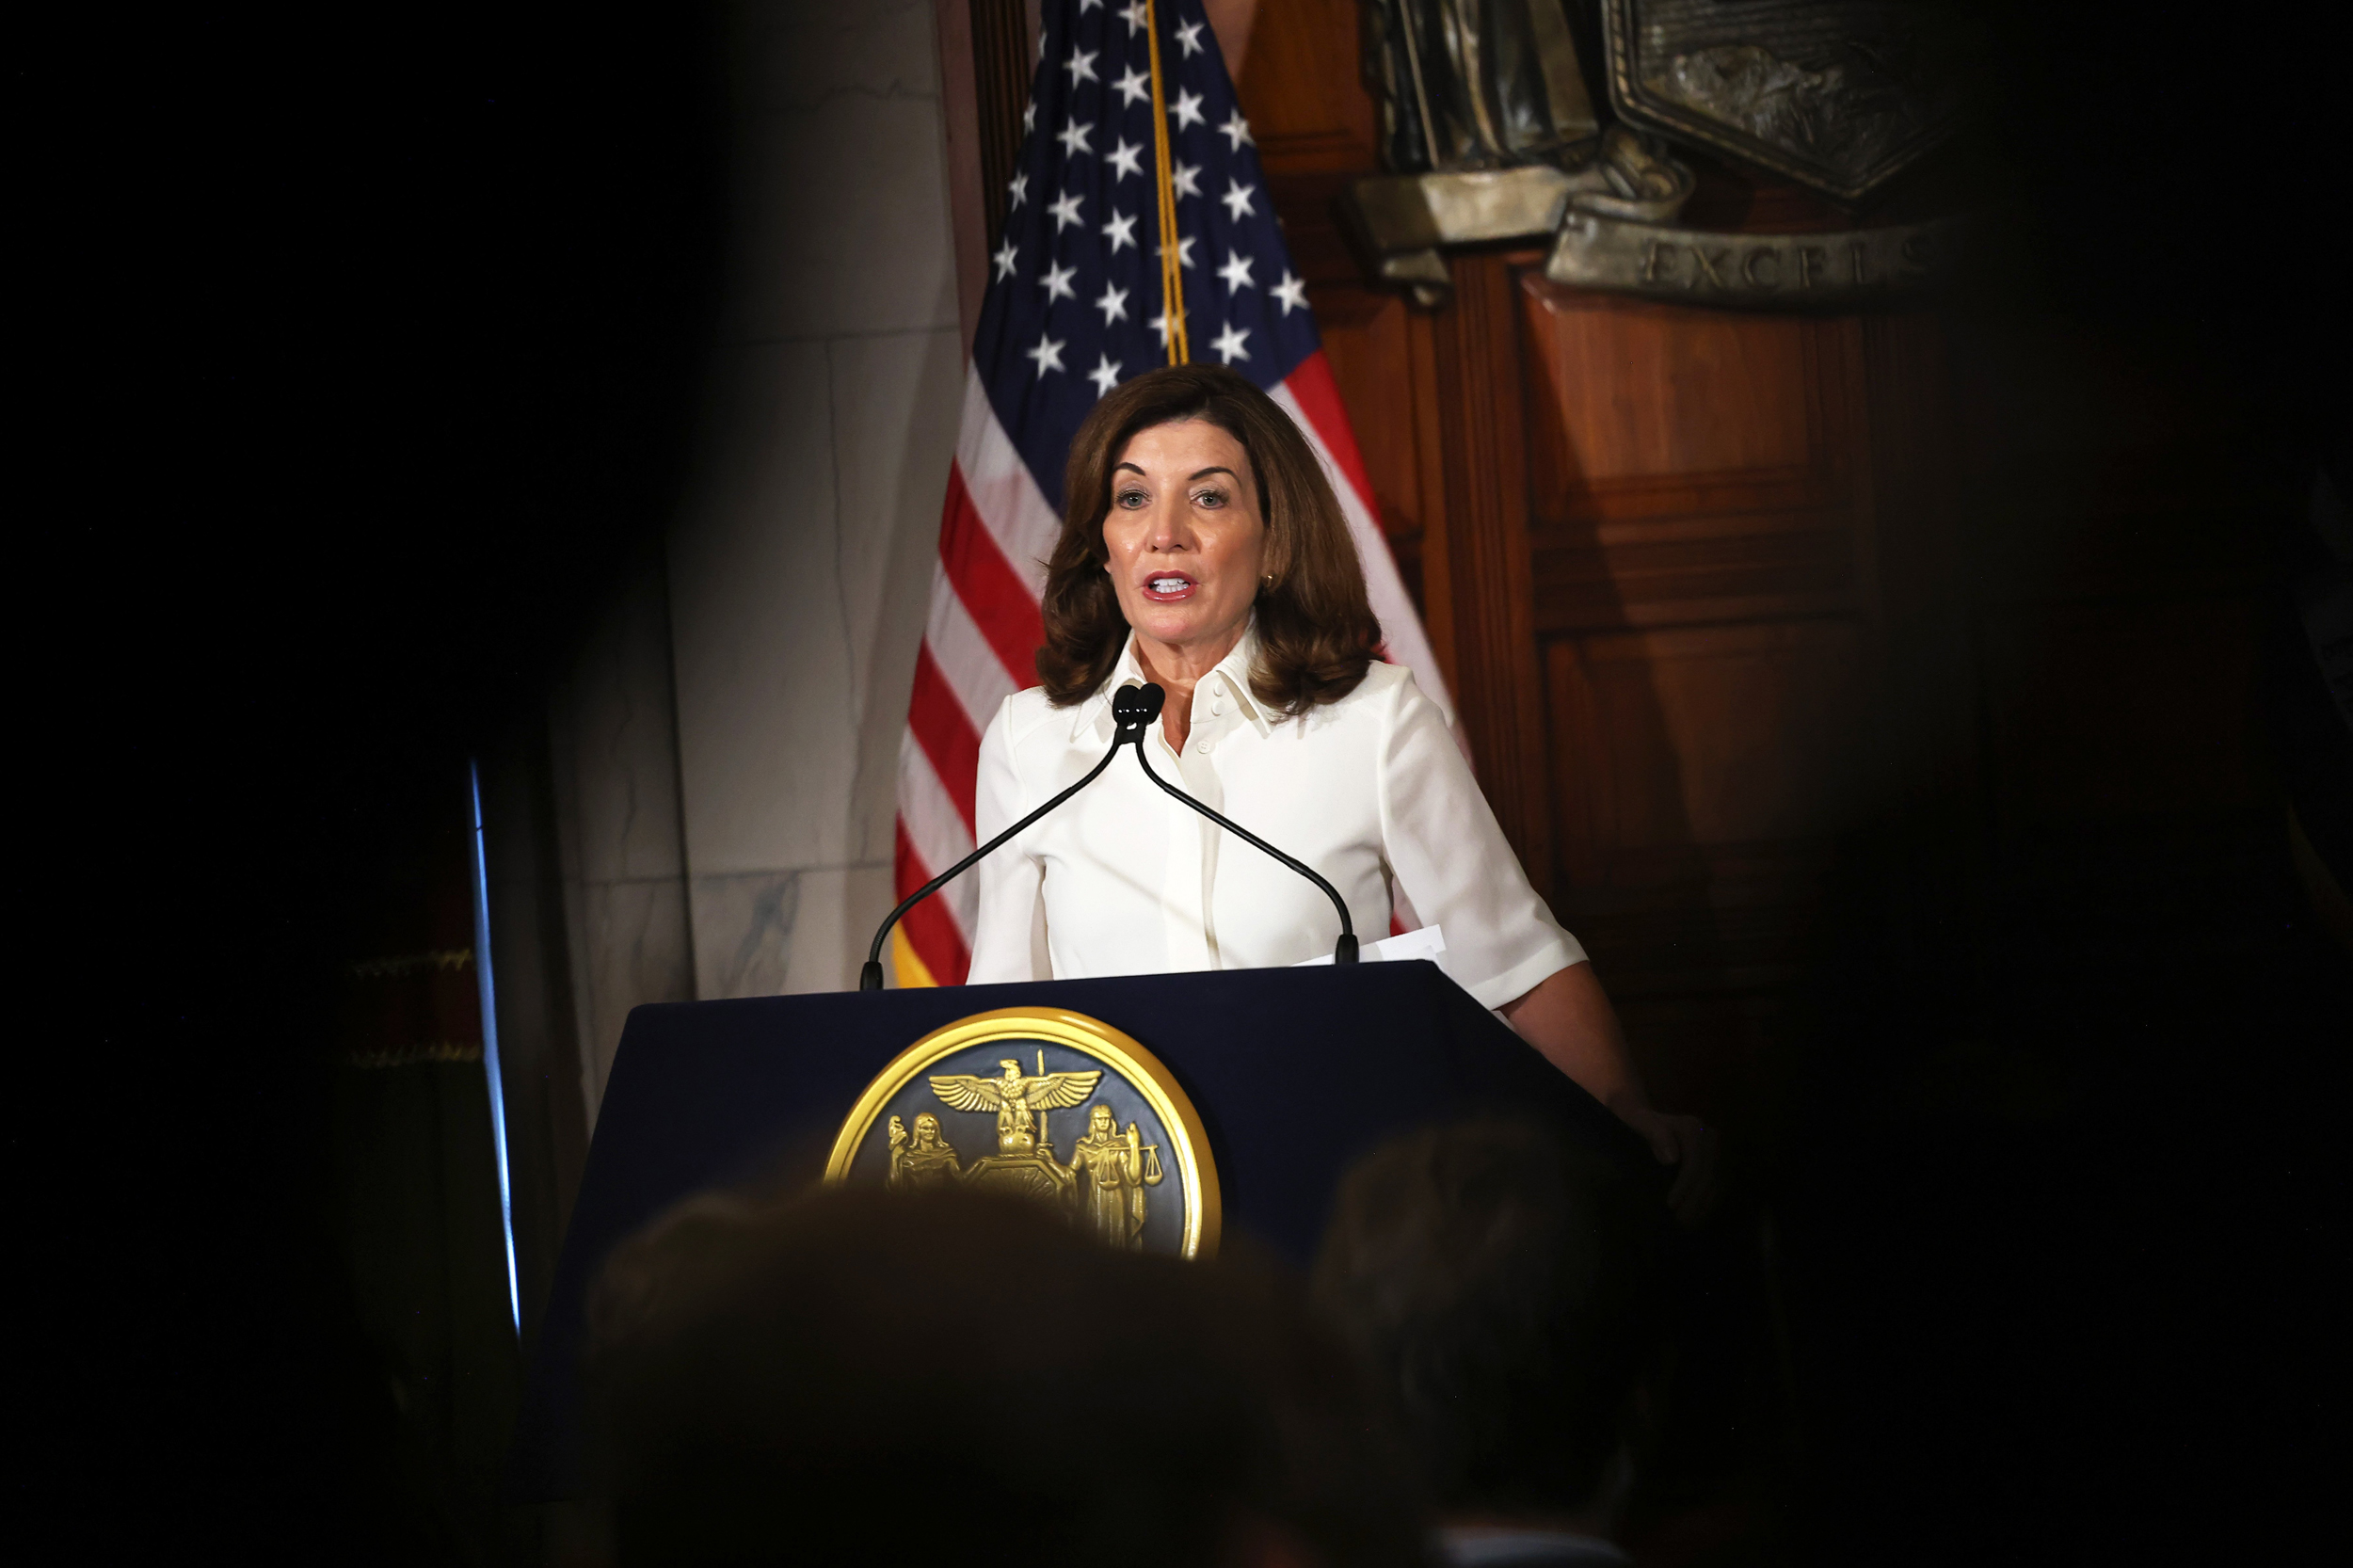 N.Y. Gov. Hochul adds 12k deaths to total coronavirus tally in show of 'transparency'